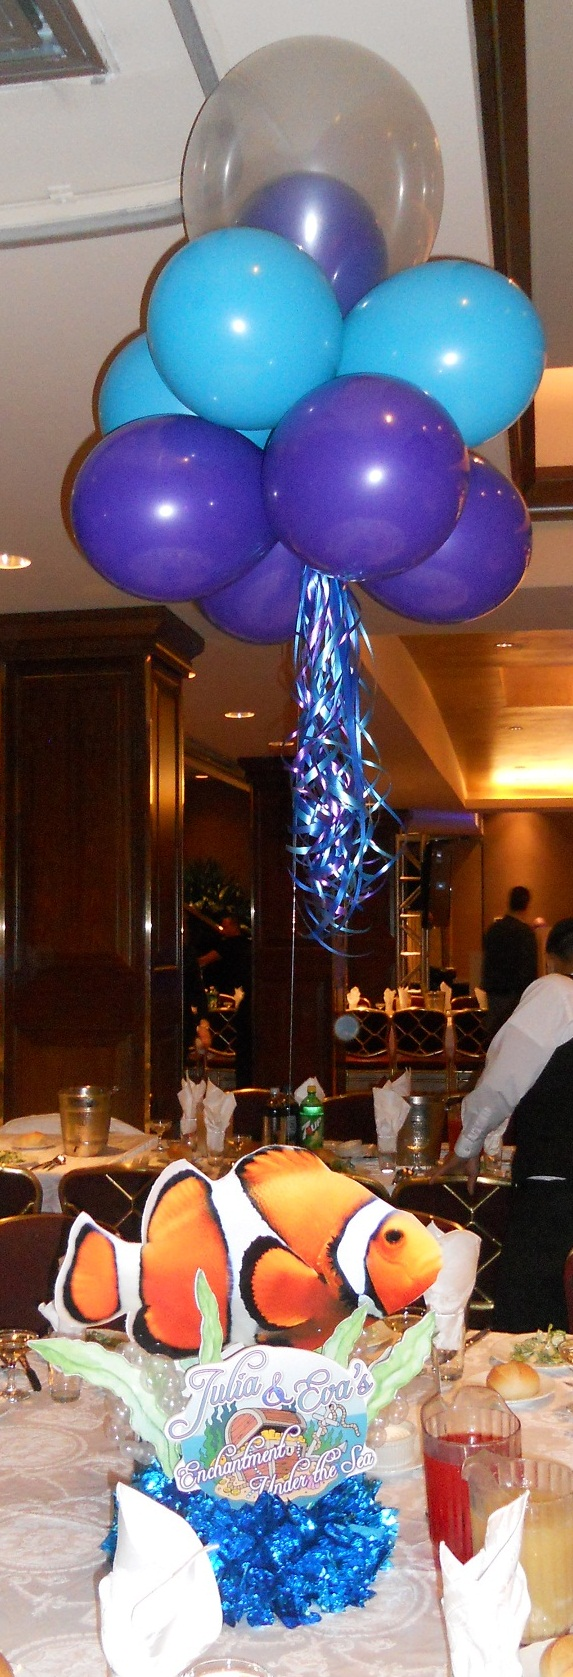 planets party balloons - photo #35